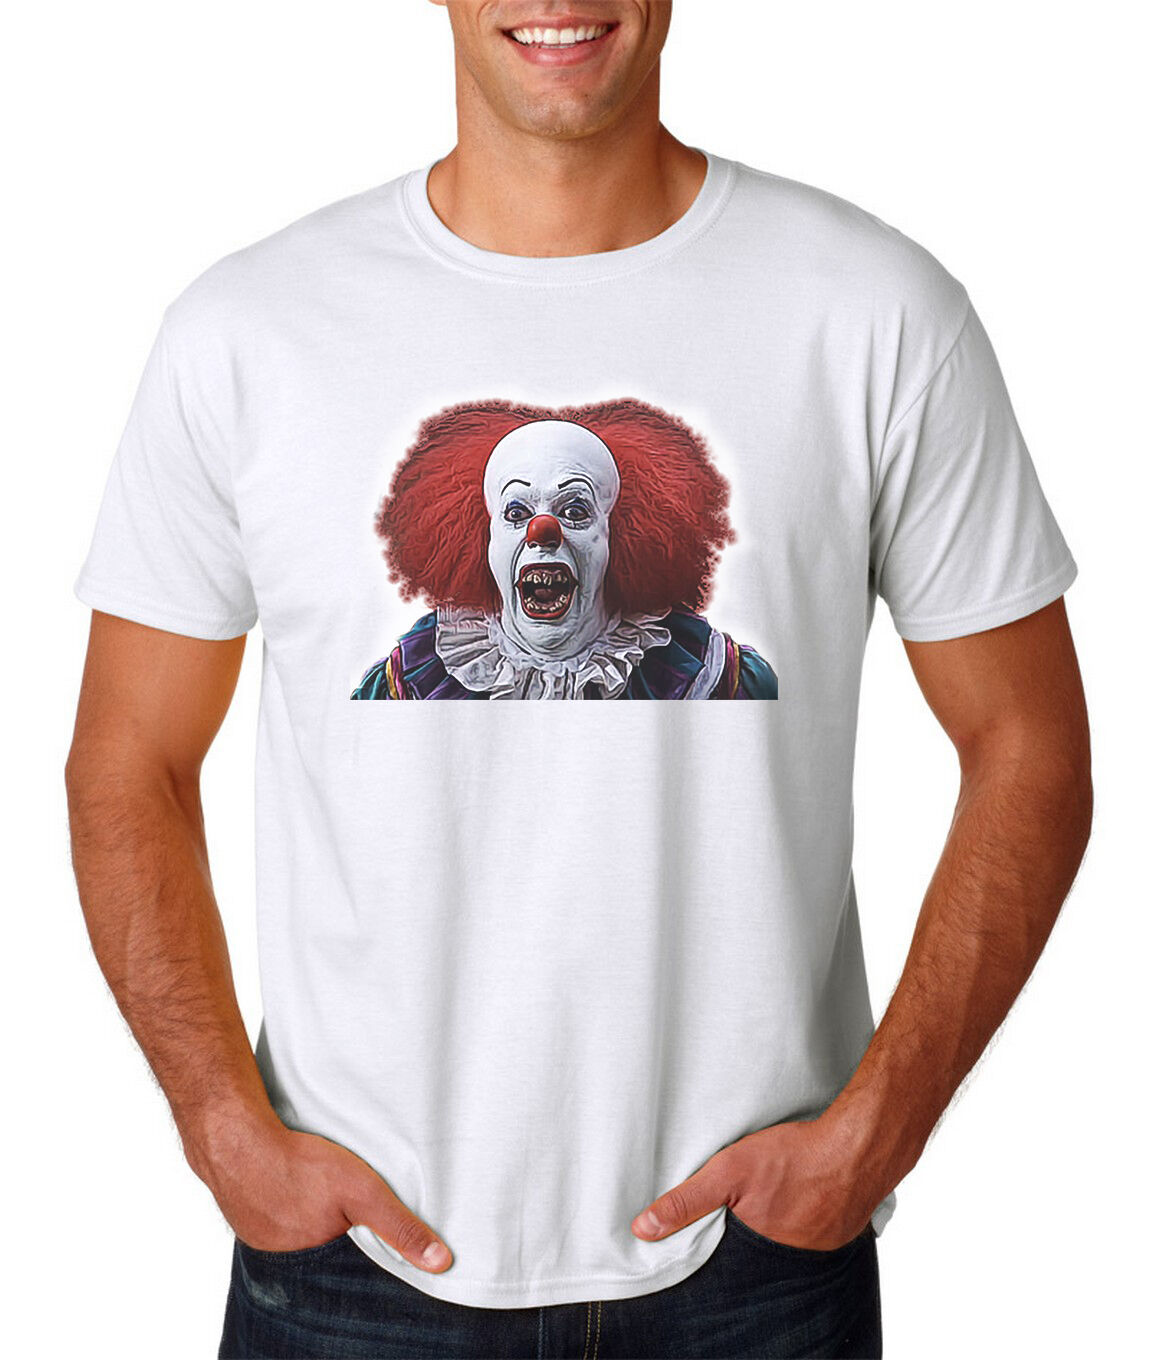 Pennywise ART T-Shirt - IT - Halloween Horror Freddy Chucky Jason Clown T-Shirt